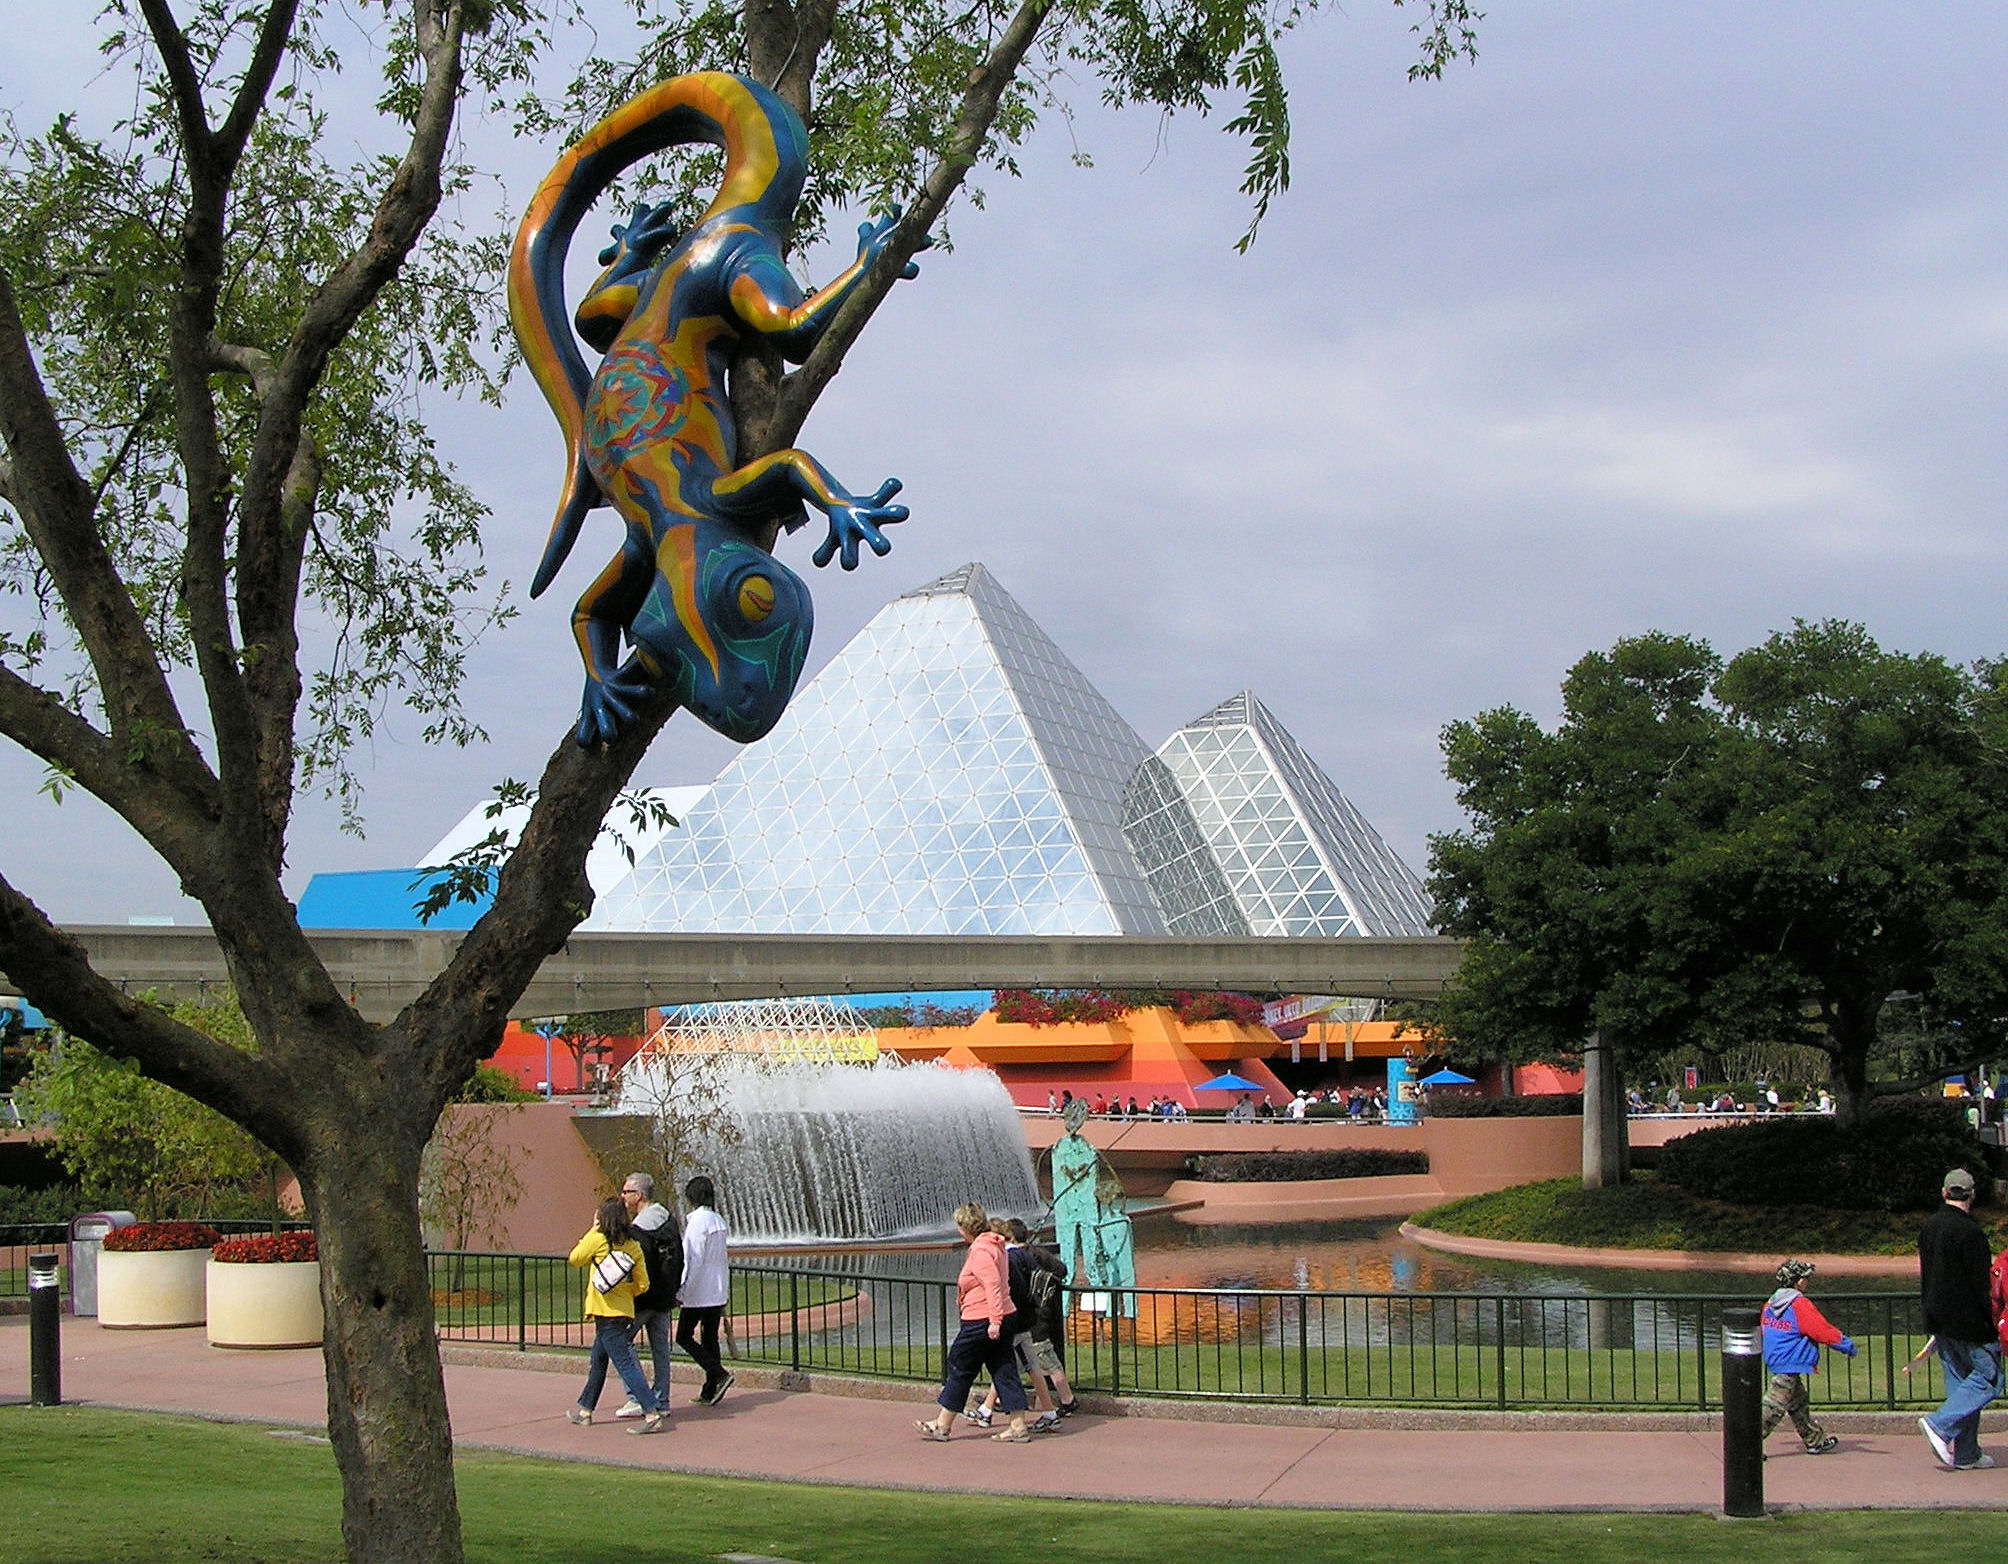 A gecko in a tree in front of the Imagination Pavilion at EPCOT.